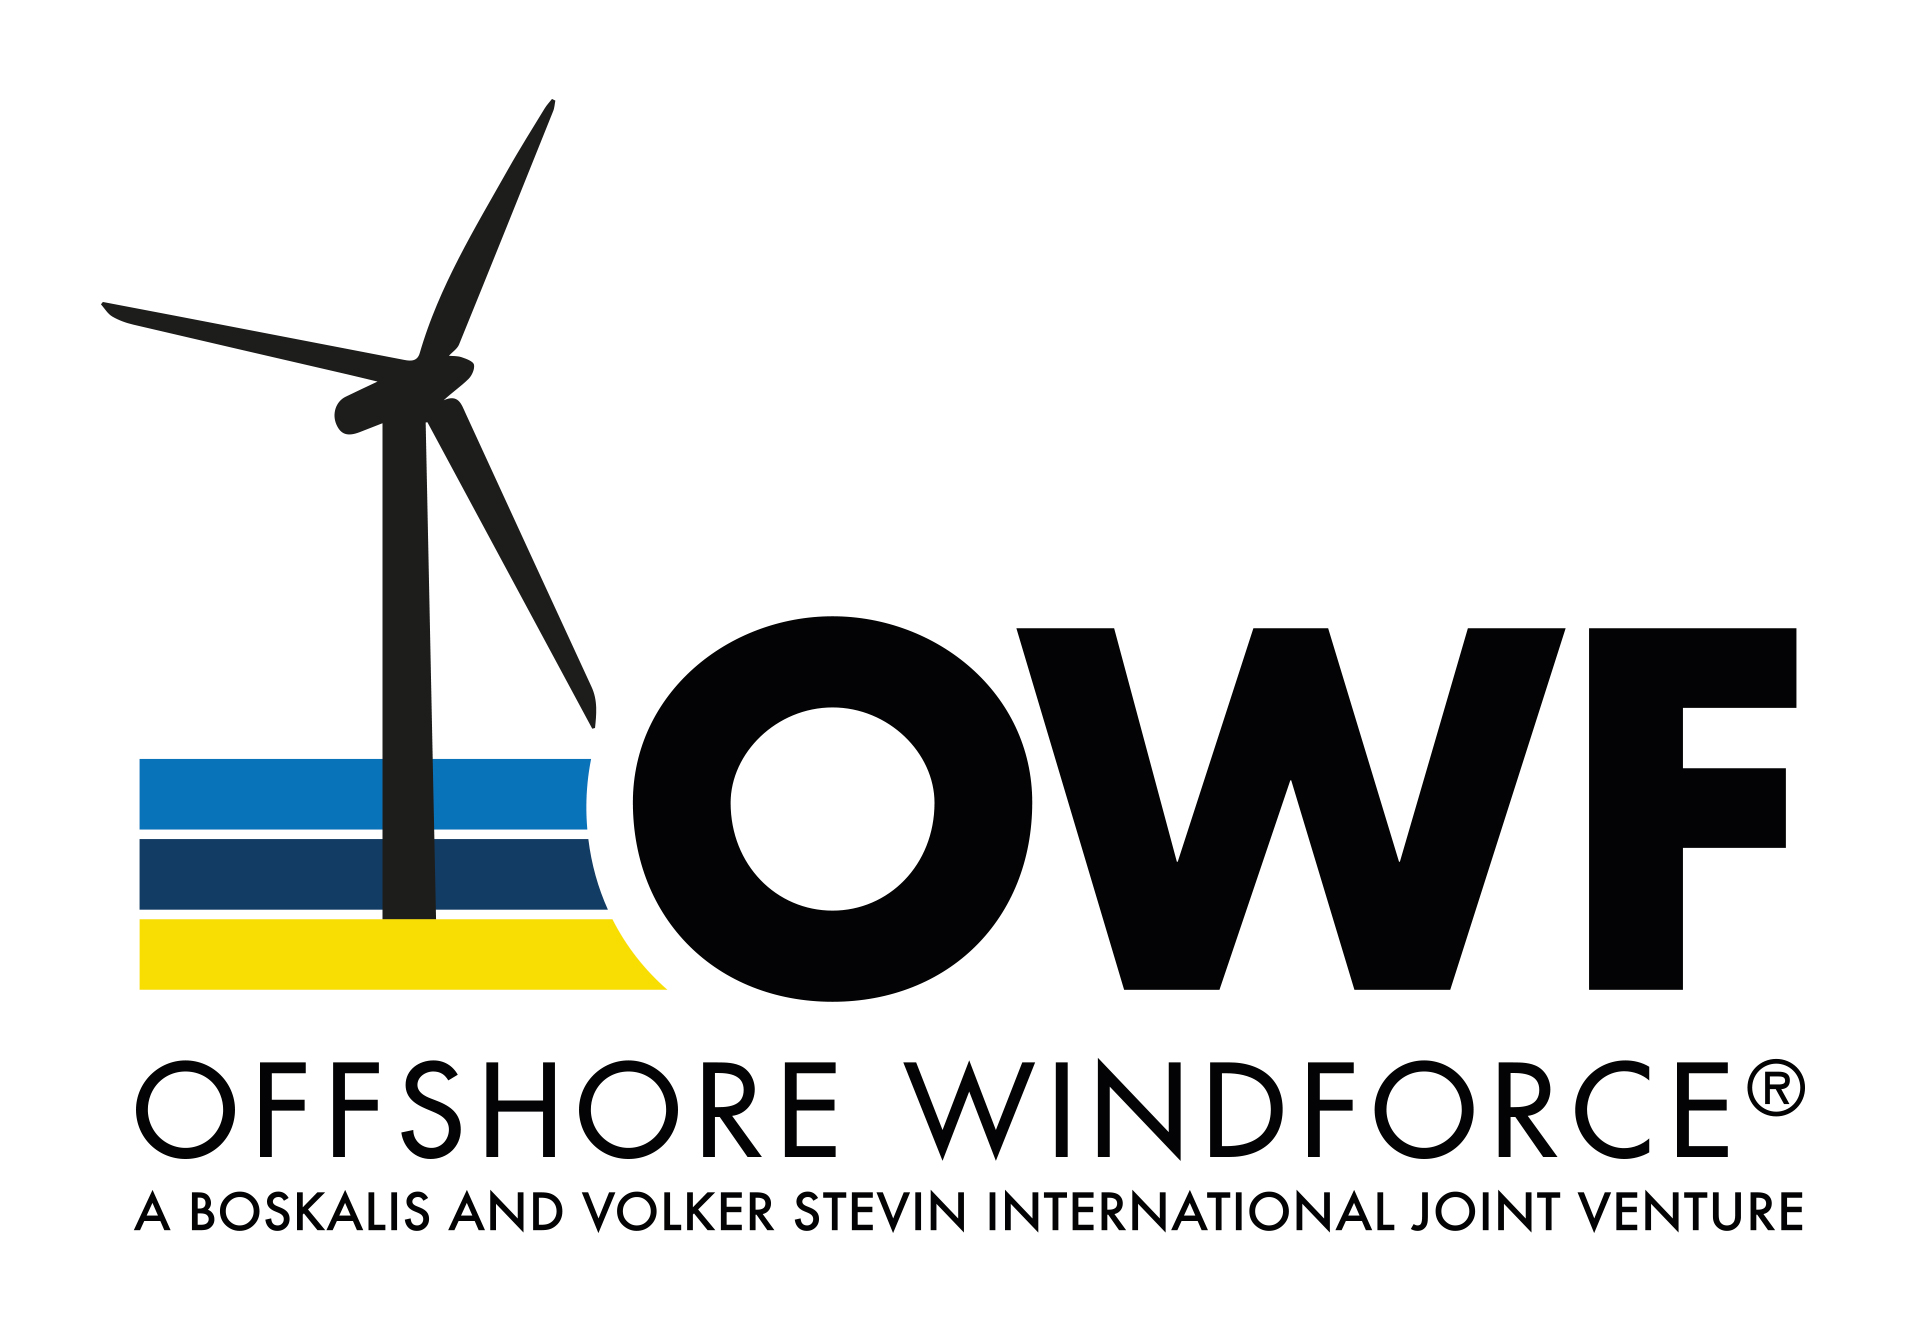 Offshore Windforce